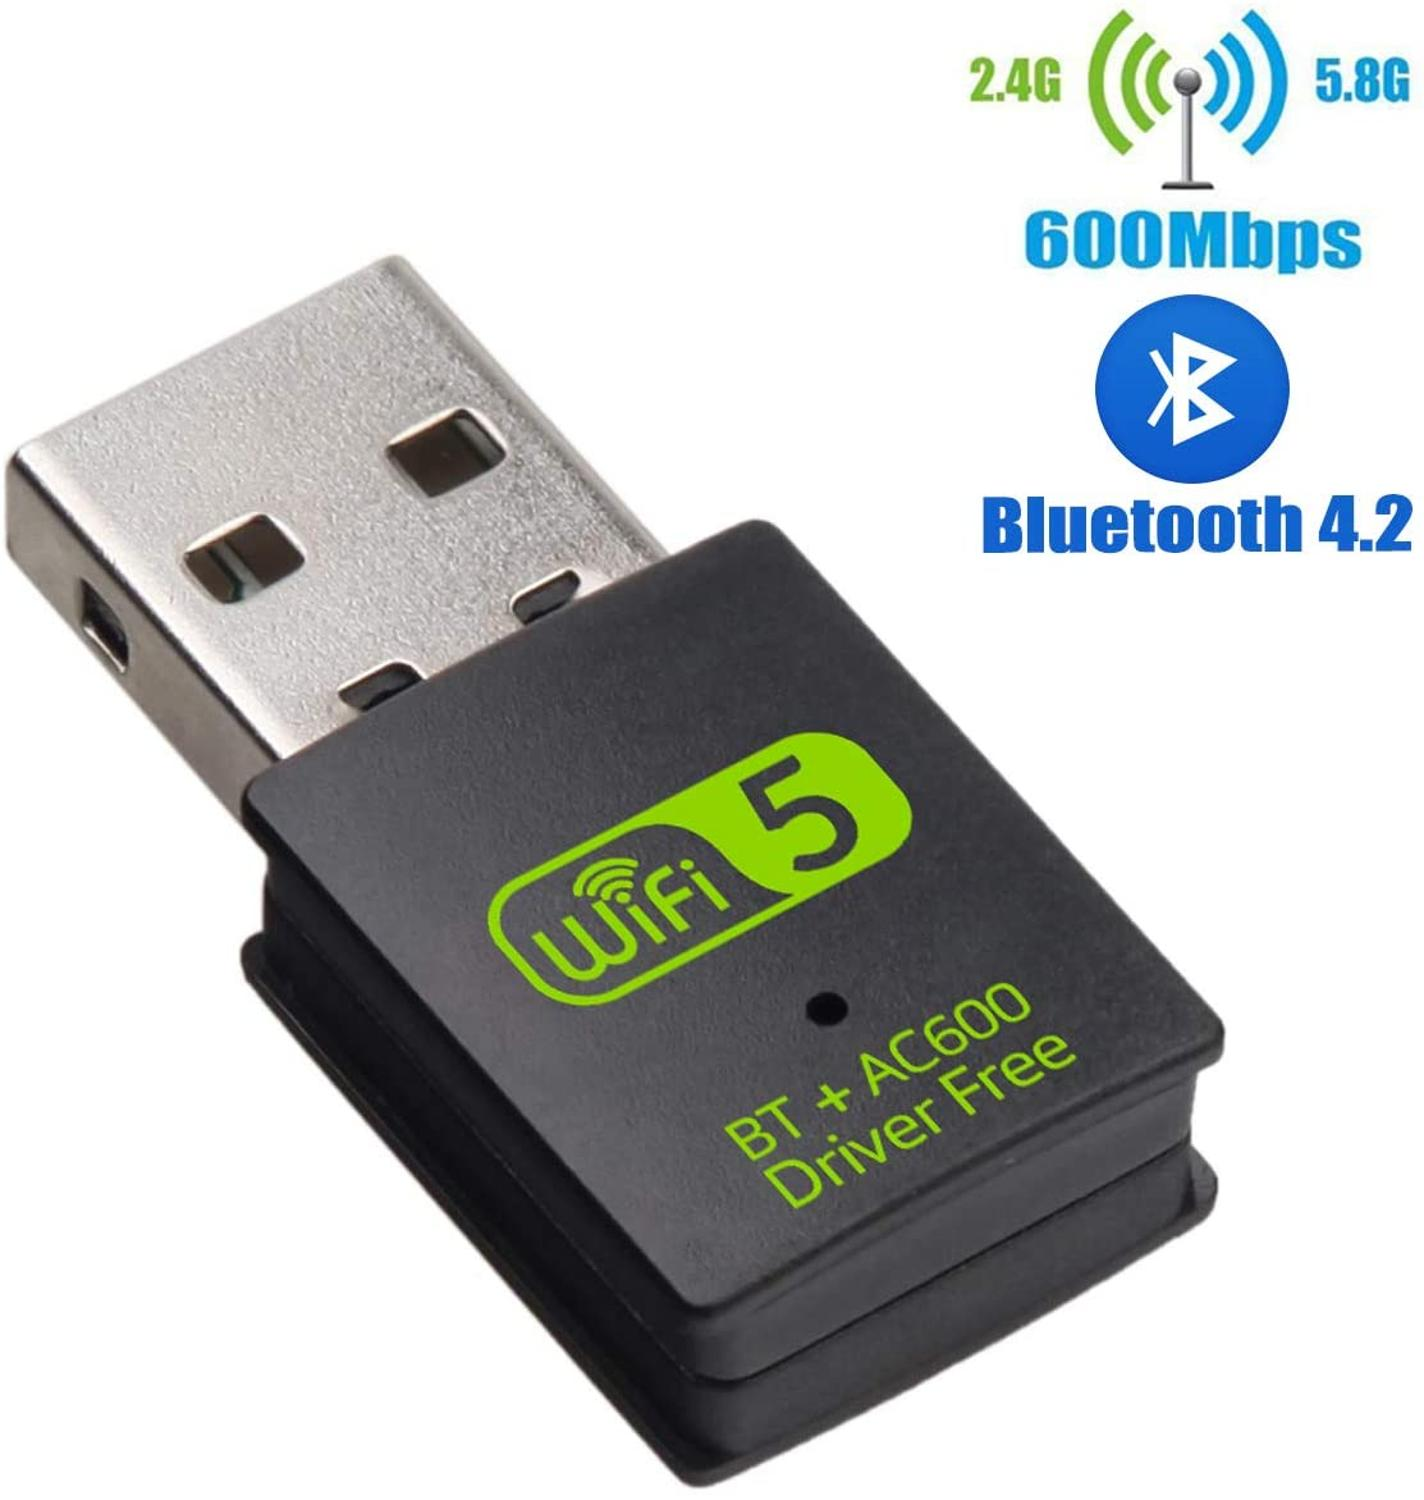 AMKLE 600Mbps WIFI USB Adapter Driver Free Bluetooth BT wifi USB dongle Dual Band LAN Ethernet Adapter USB Network Card(China)